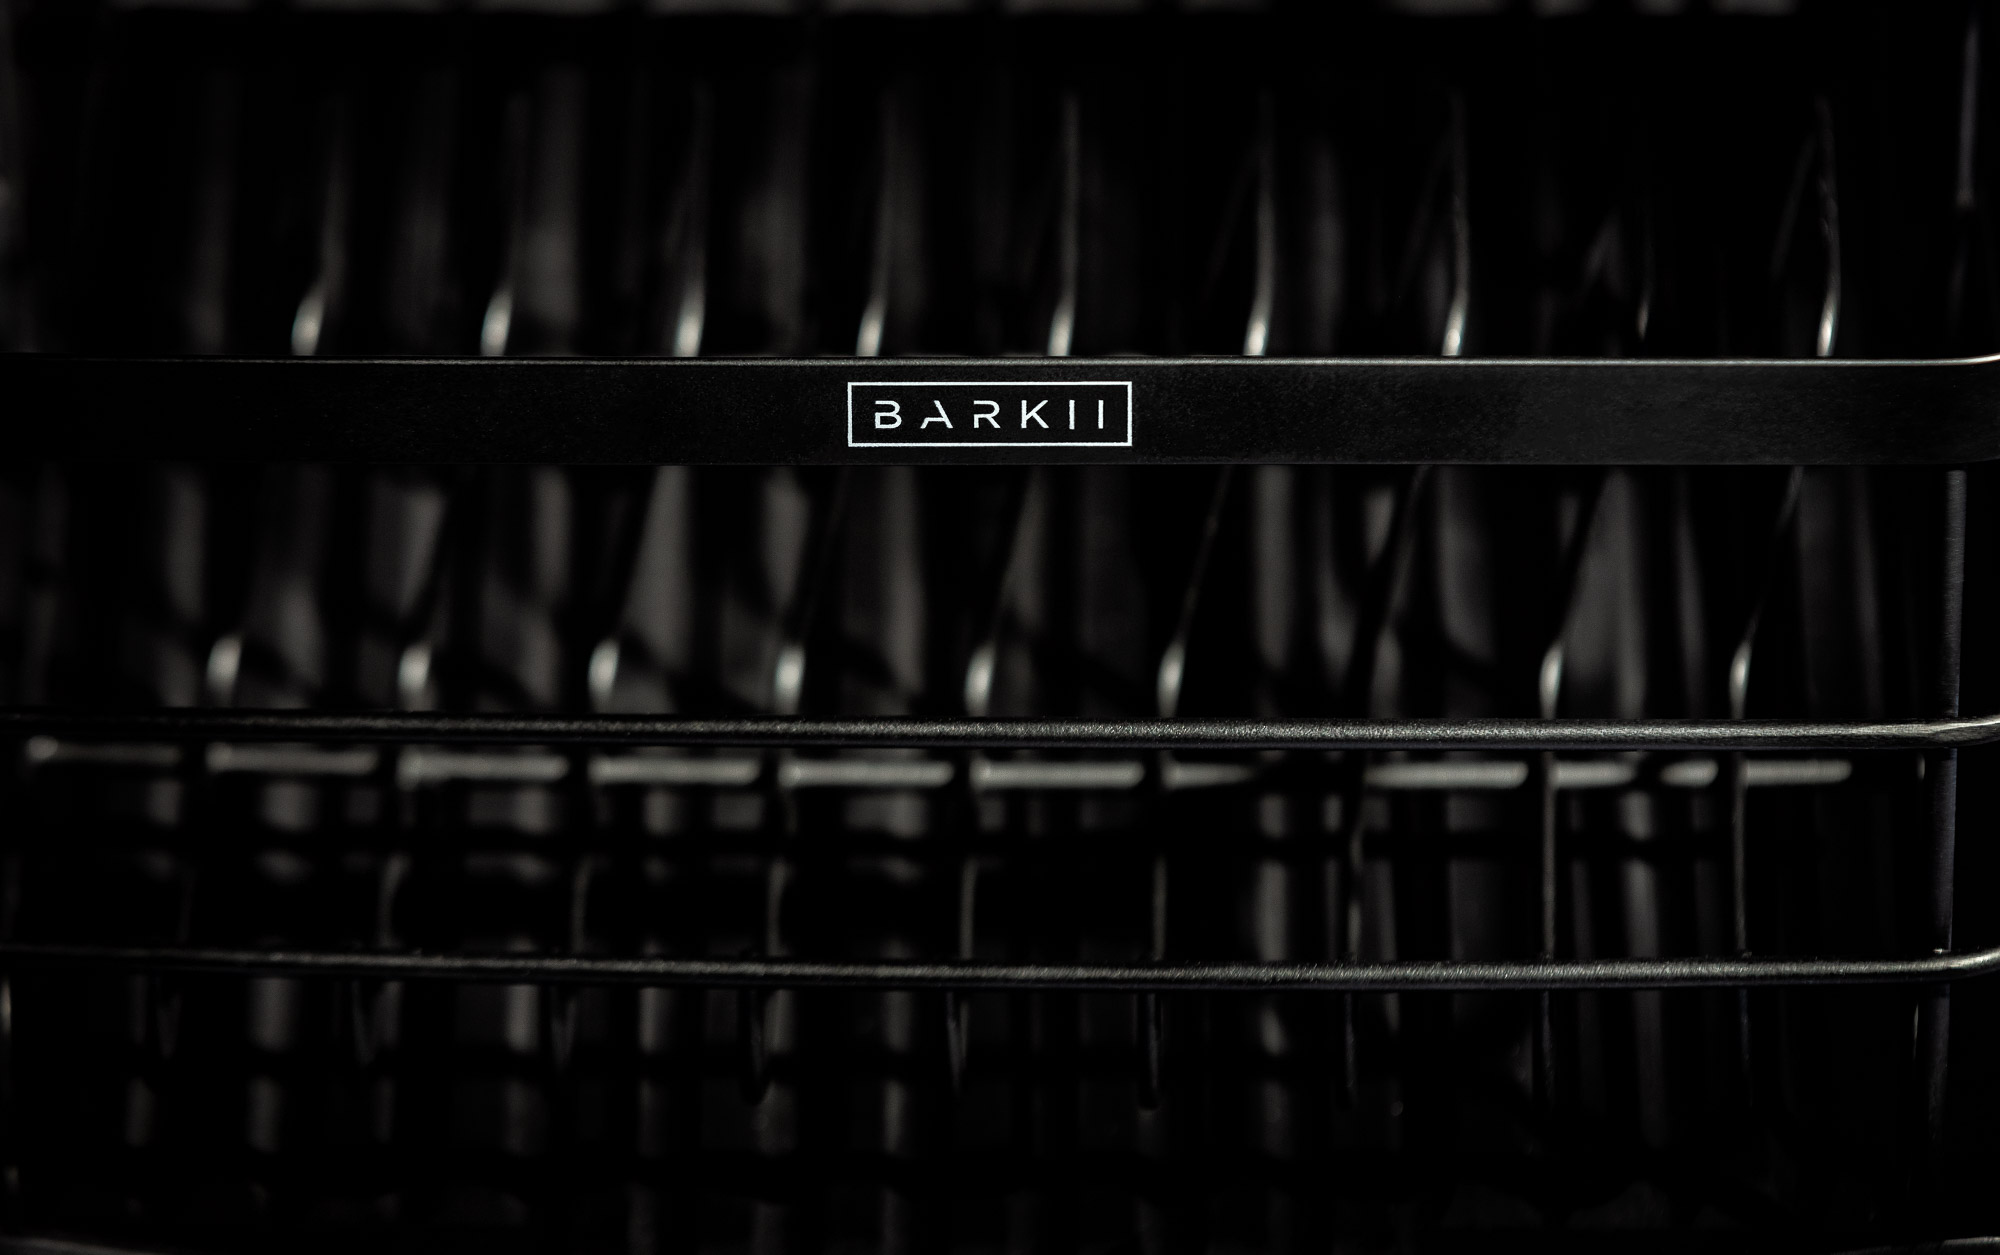 Dish Rack Barkii logo closeup with black background